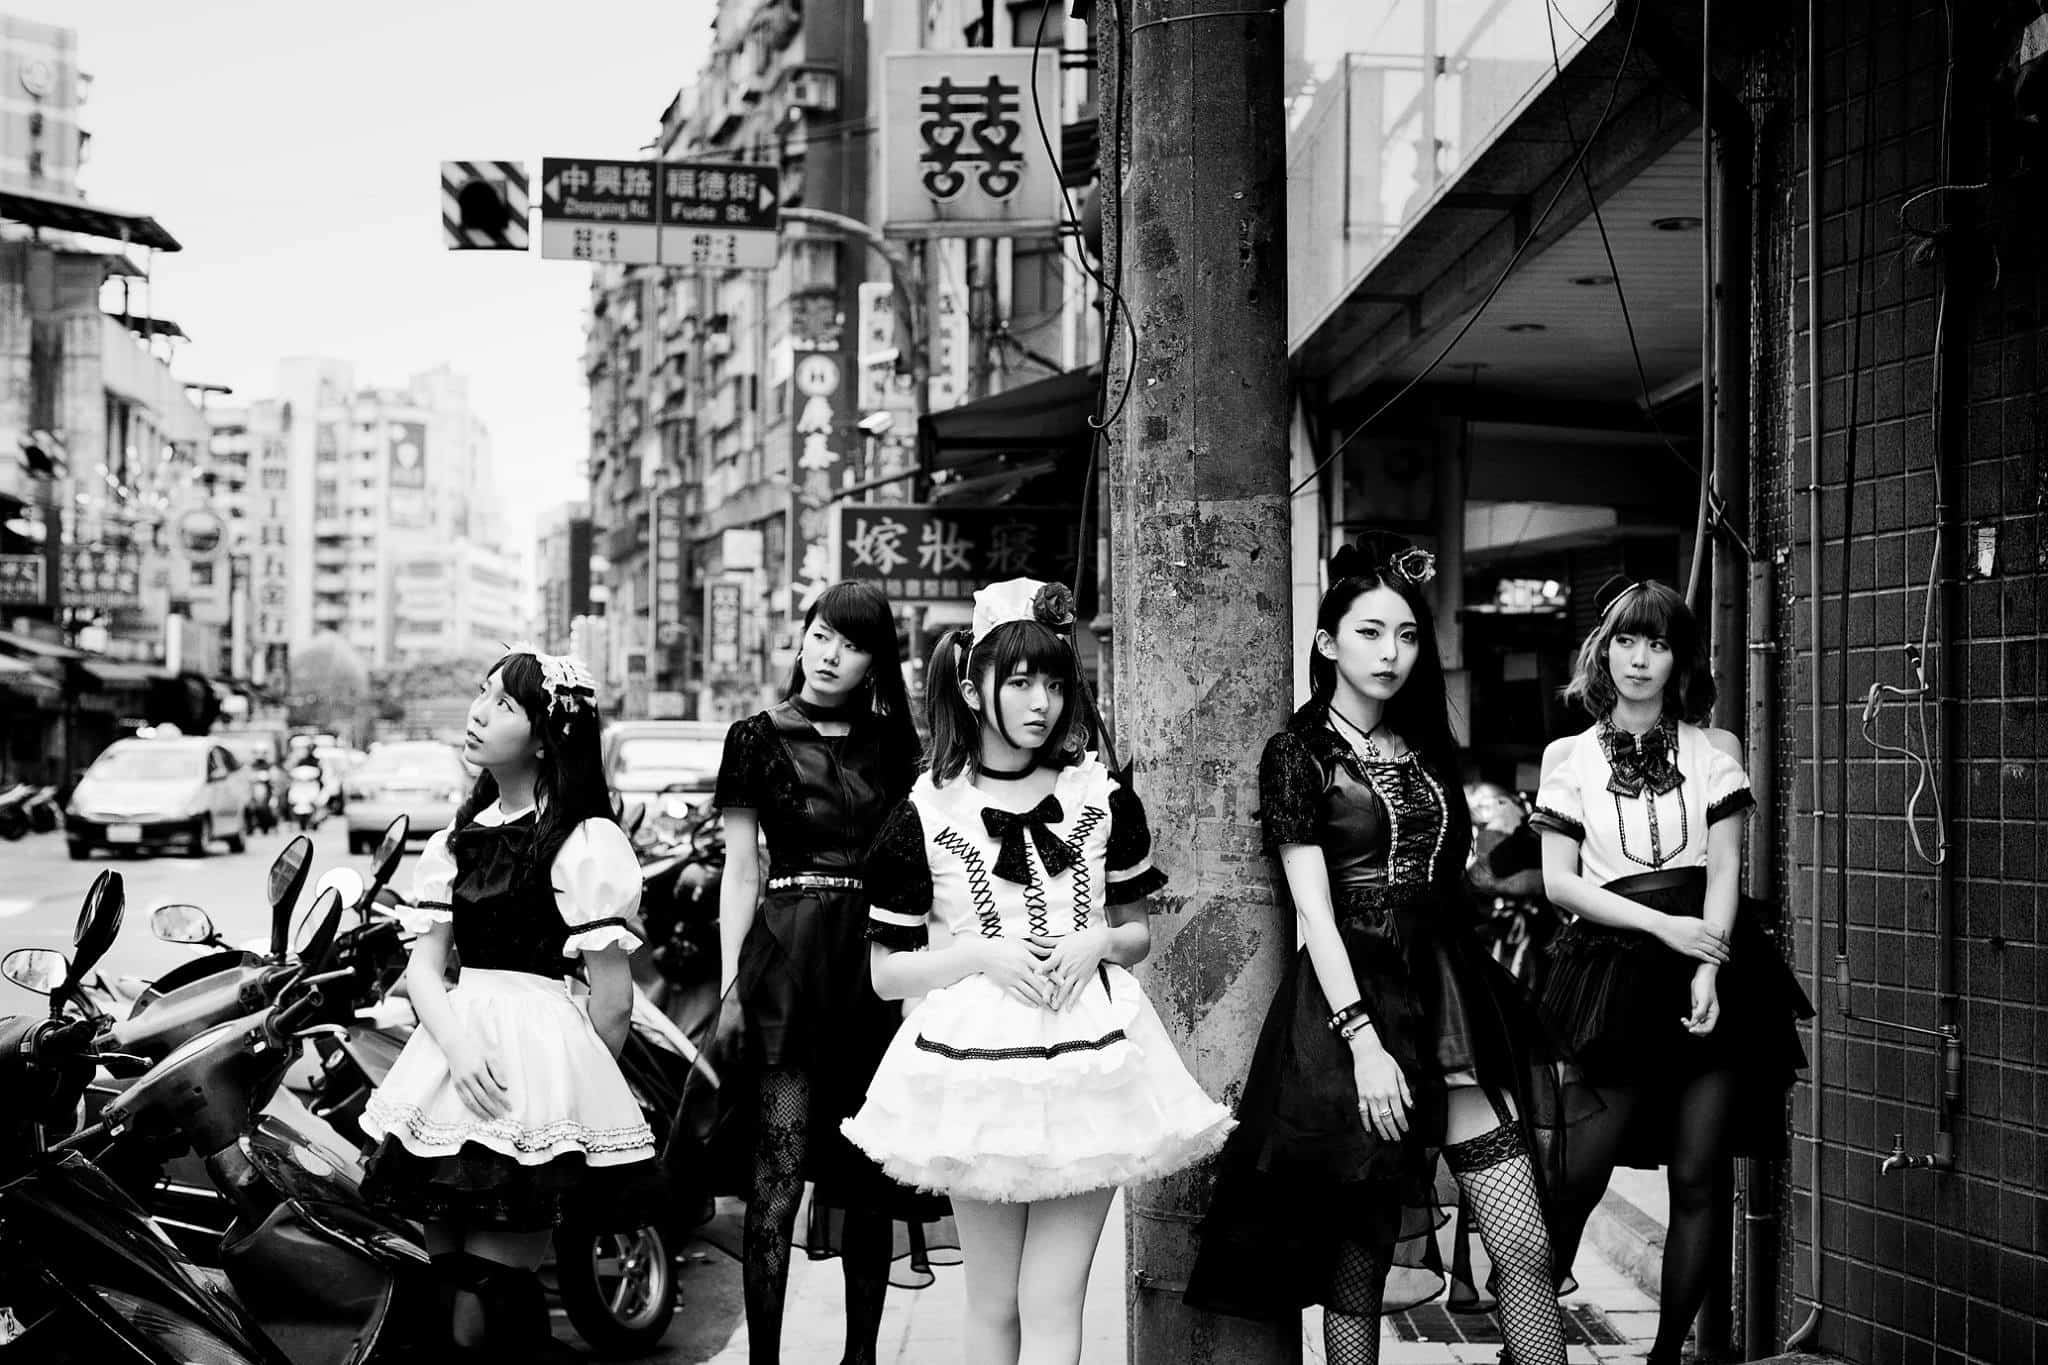 BAND-MAID 2017